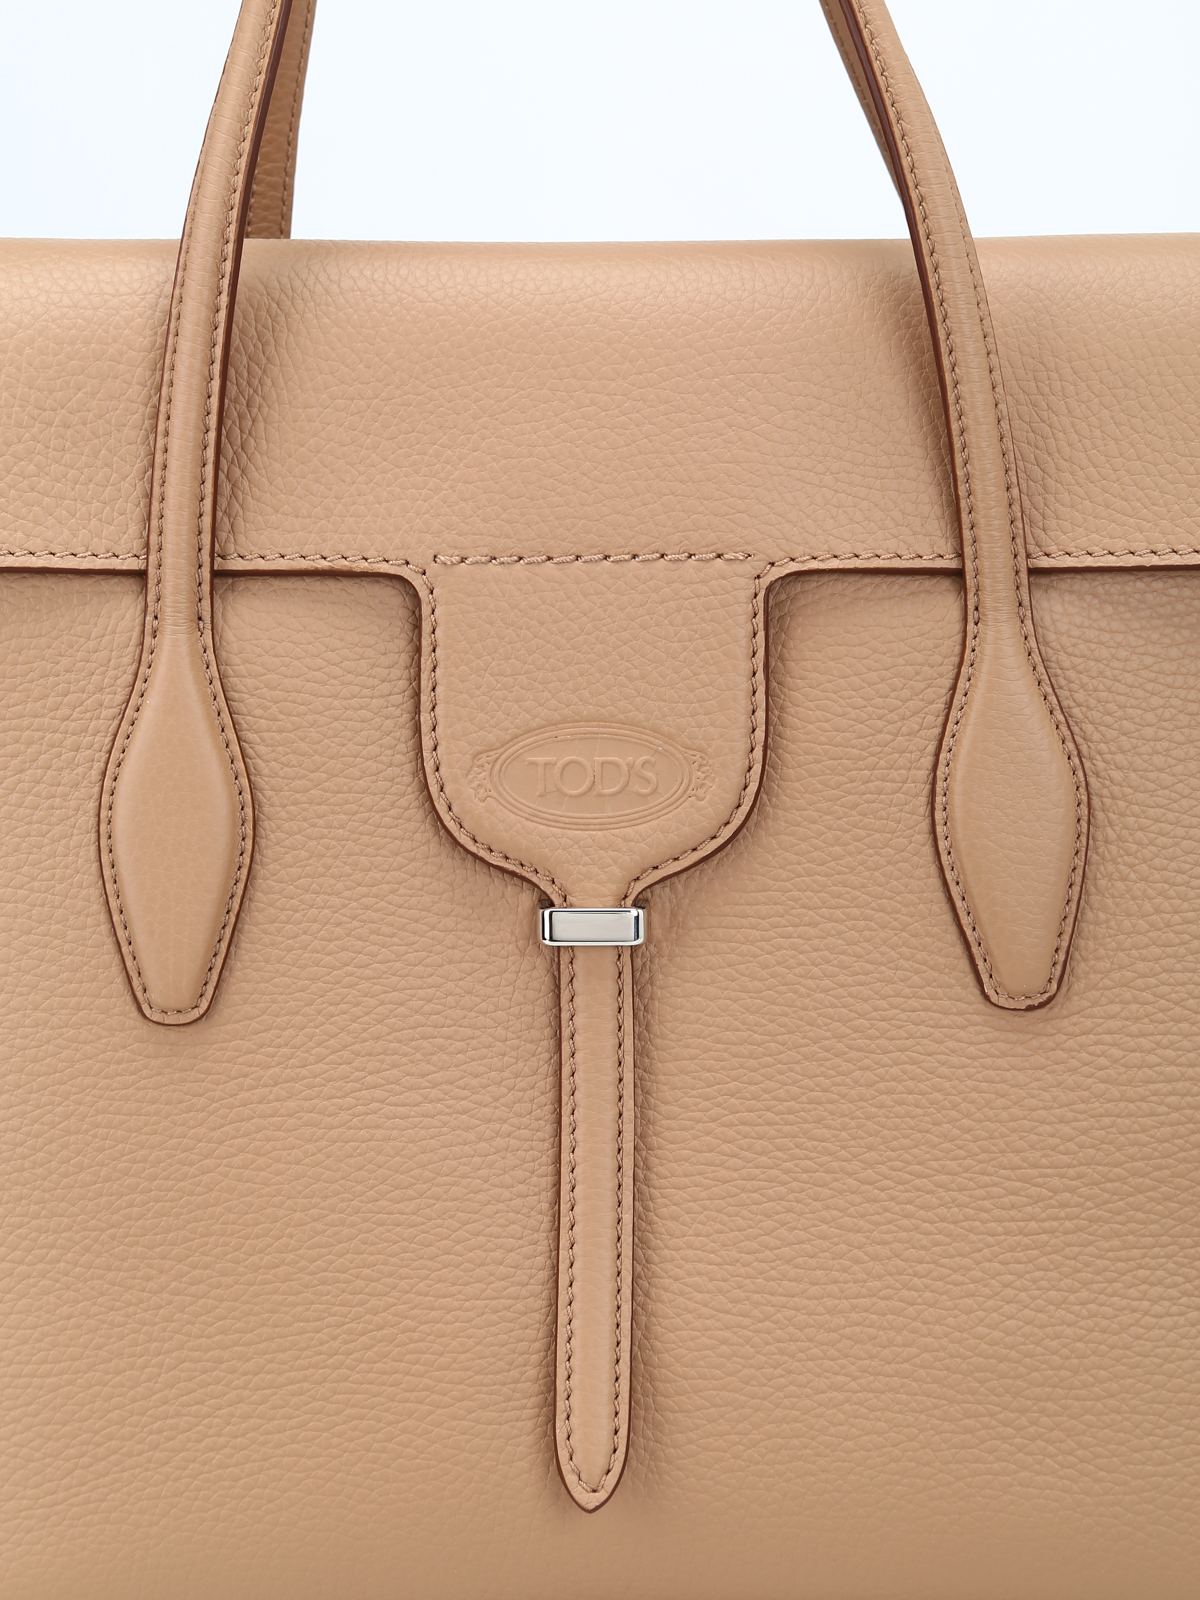 056aad79afeb Tod S - Joy medium grain leather tote - totes bags - XBWANXA0300RIAS812